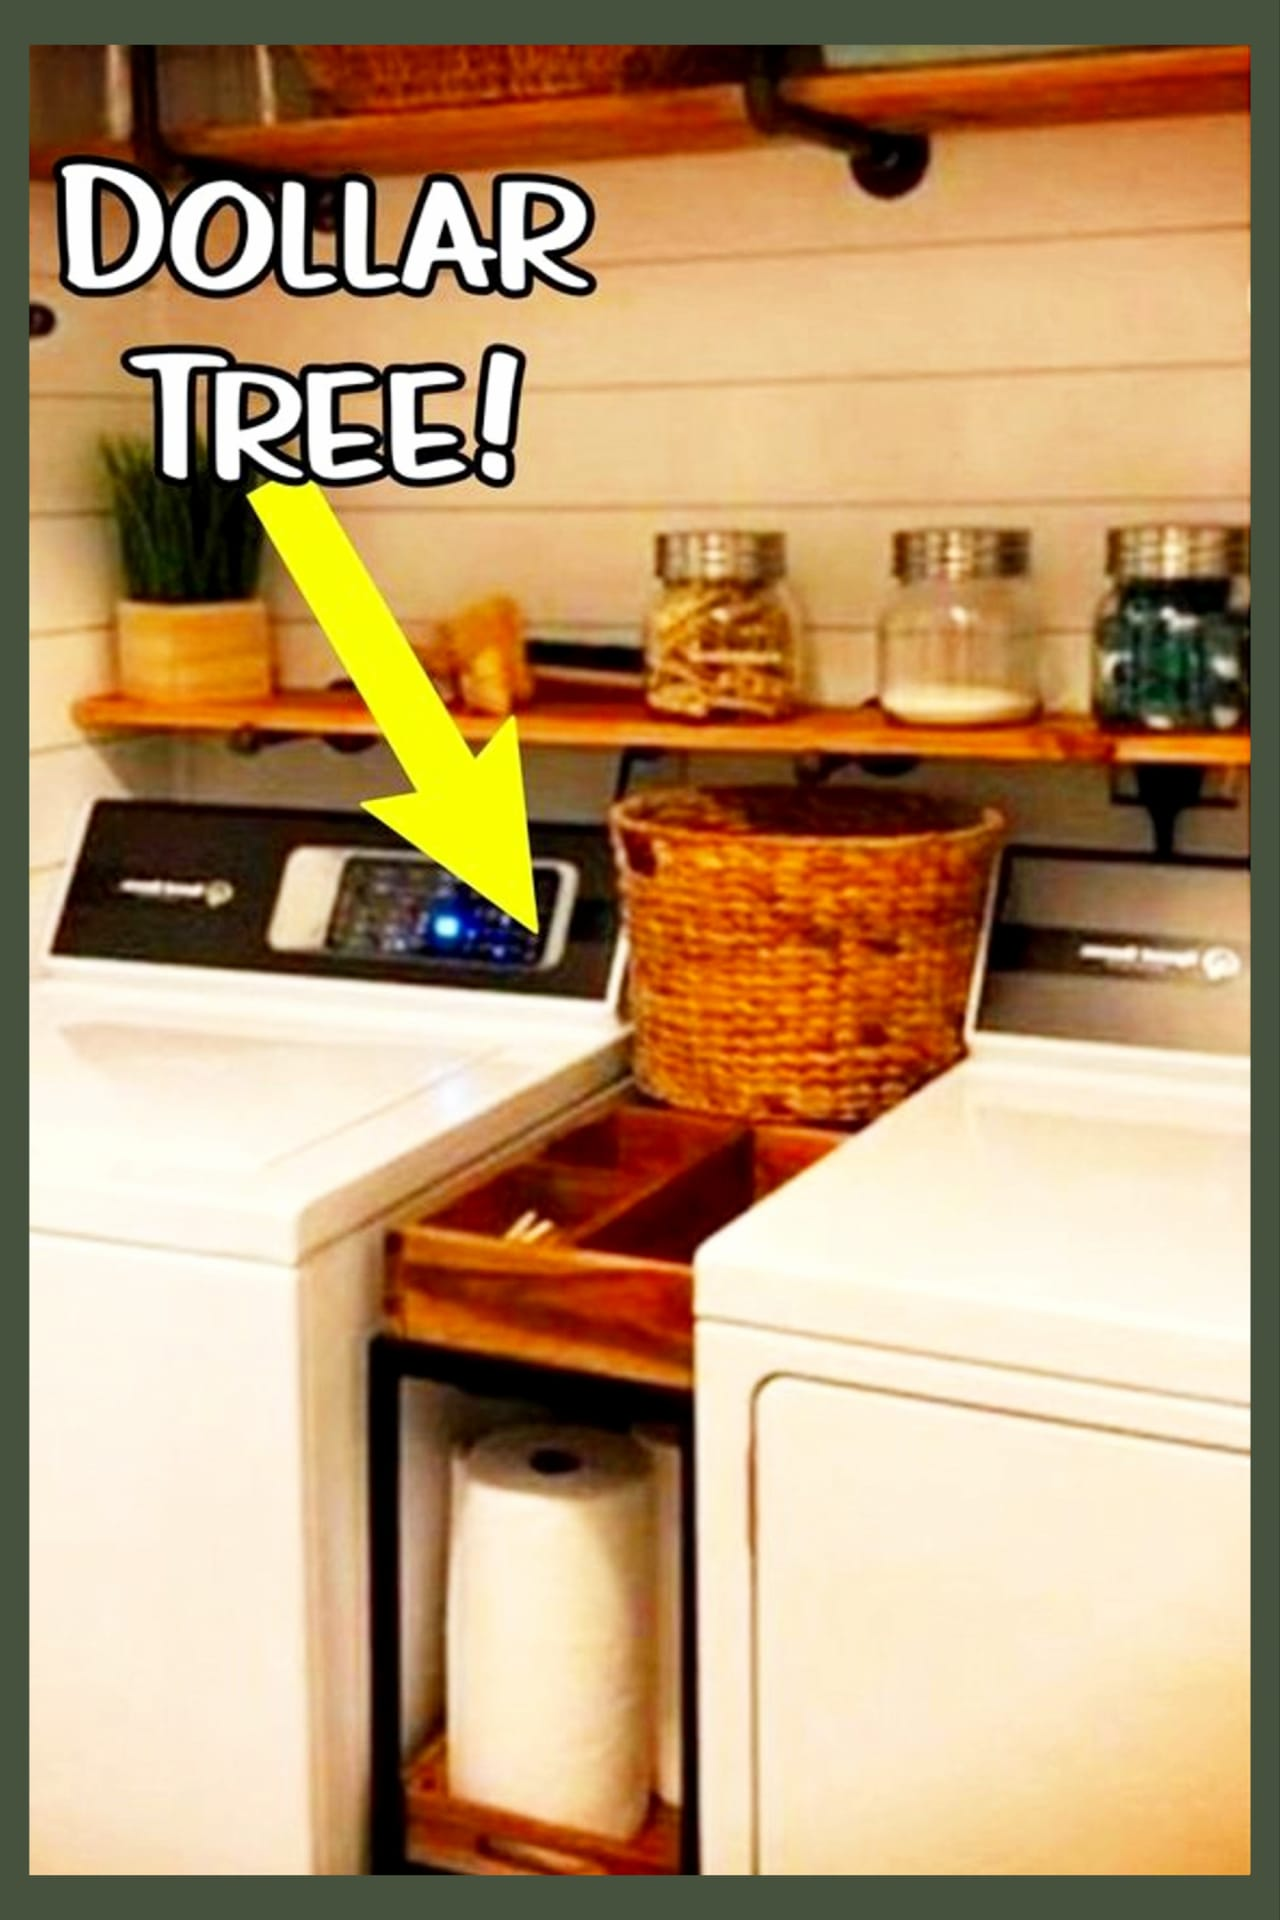 Small laundry room ideas on a budget - tiny laundry room ideas and cute laundry room ideas - also laundry room organization and storage ideas - dollar tree organizing the laundry room